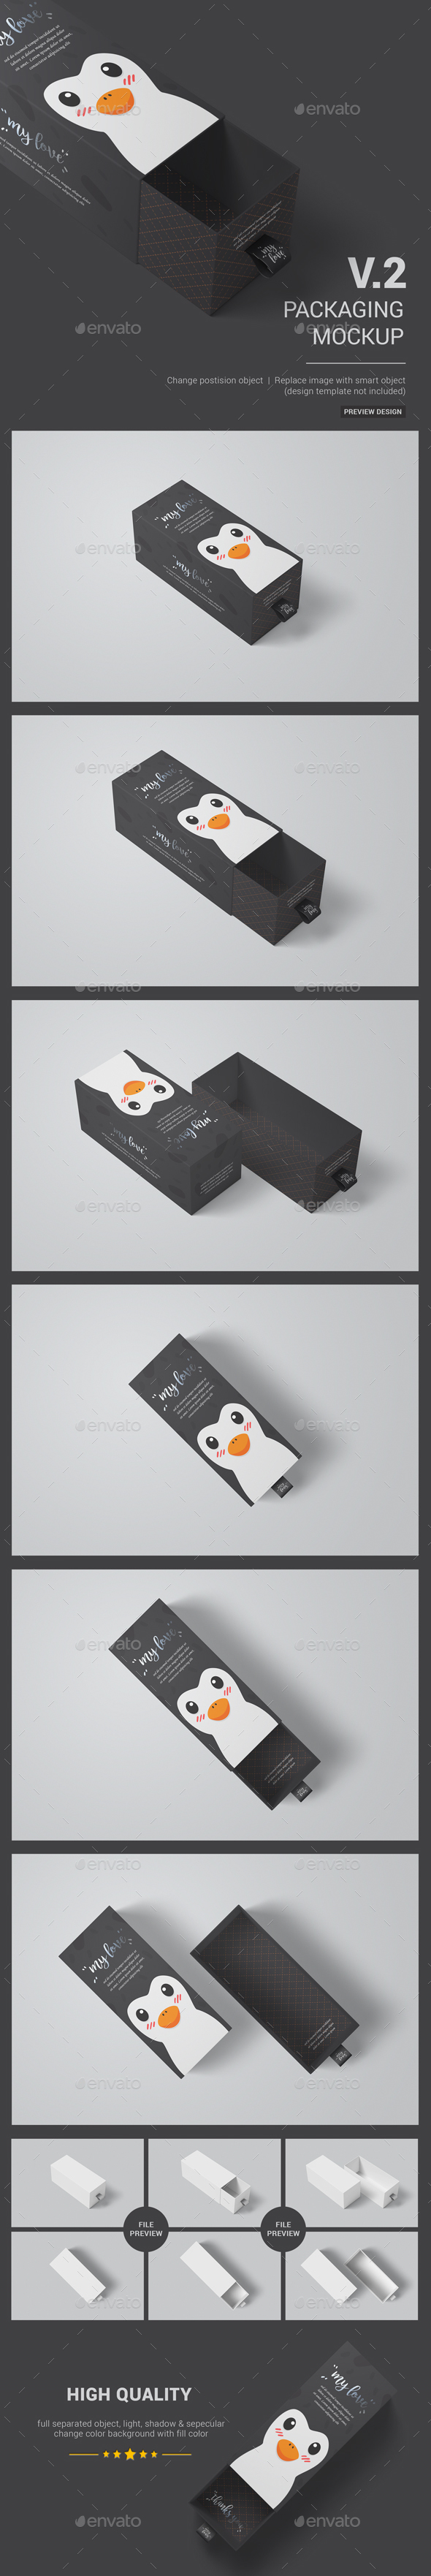 GraphicRiver Sliding Box Packaging Package Mockup 02 20833169